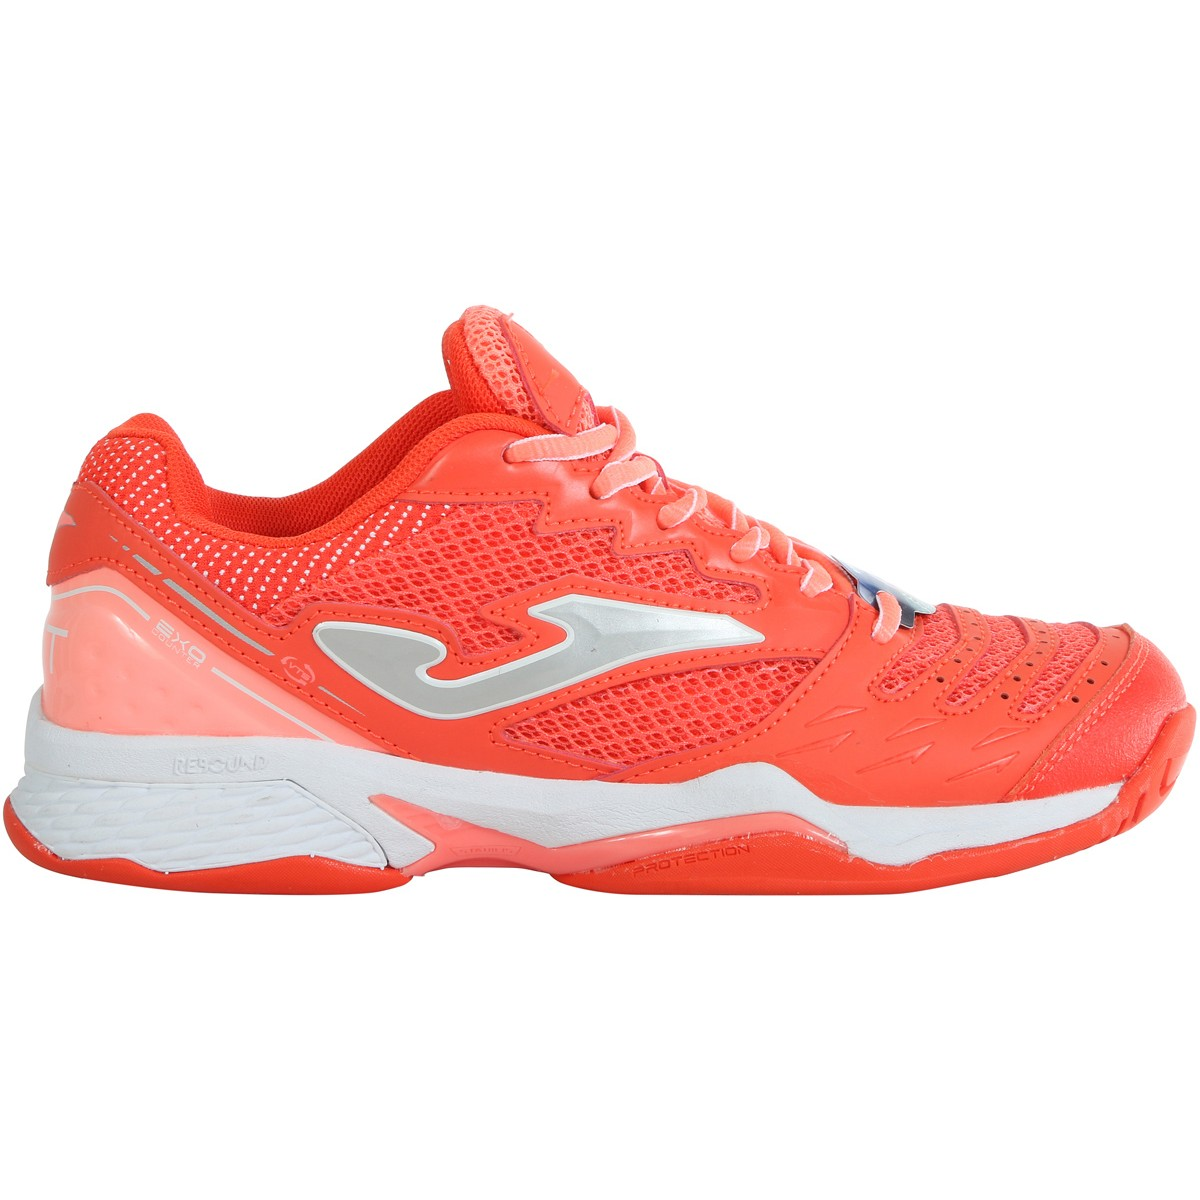 CHAUSSURES JOMA FEMME SET